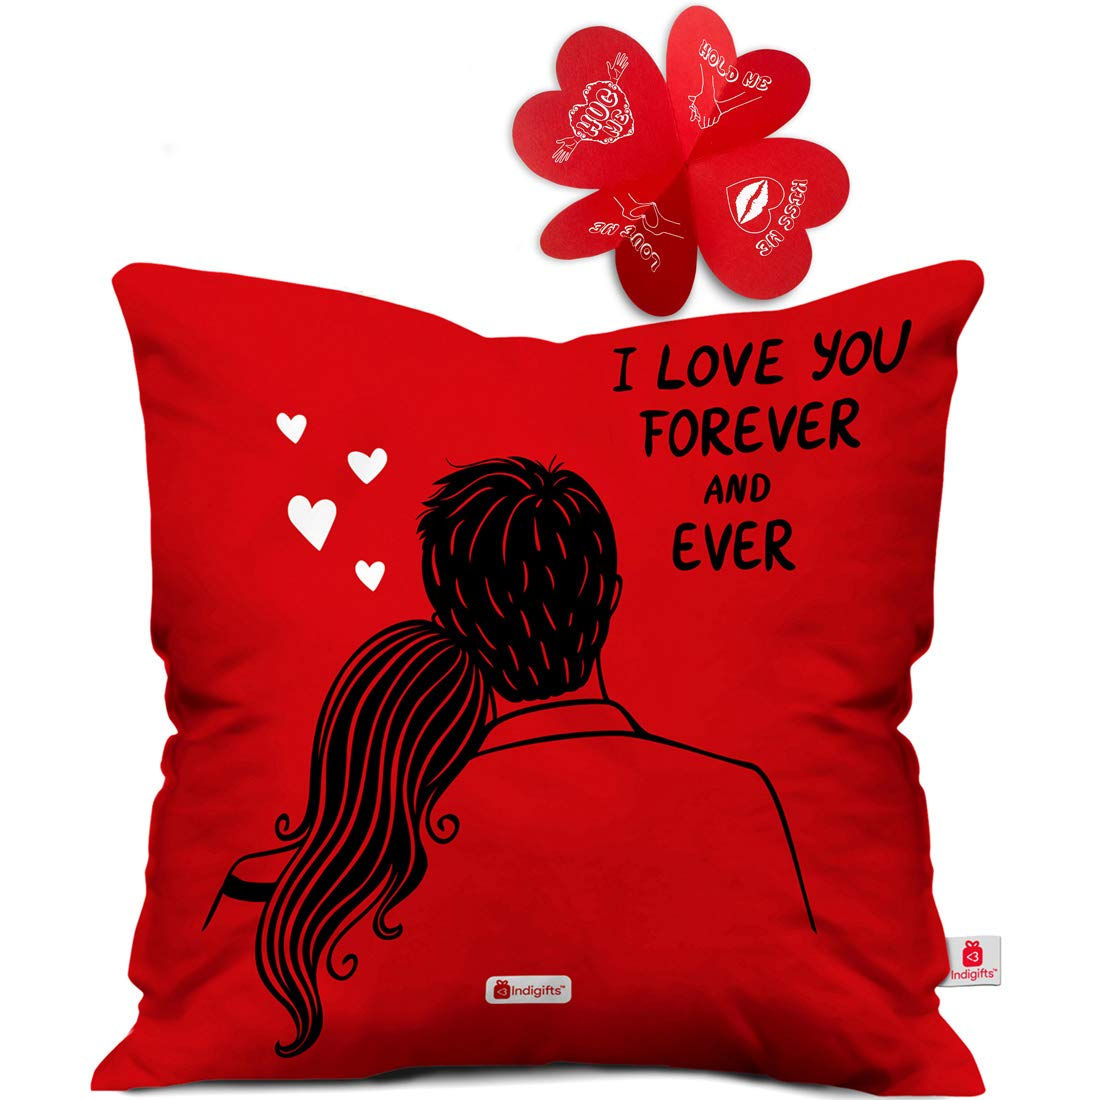 Amazon India Offer Get upto 50% off on Gift Indigifts Valentine Day Gift I love You Forever Quote Romantic Couple Sitting Together Red Cushion Cover Gift for Boyfriend, Girlfriend, Birthday, Wife, Husband, Anniversary